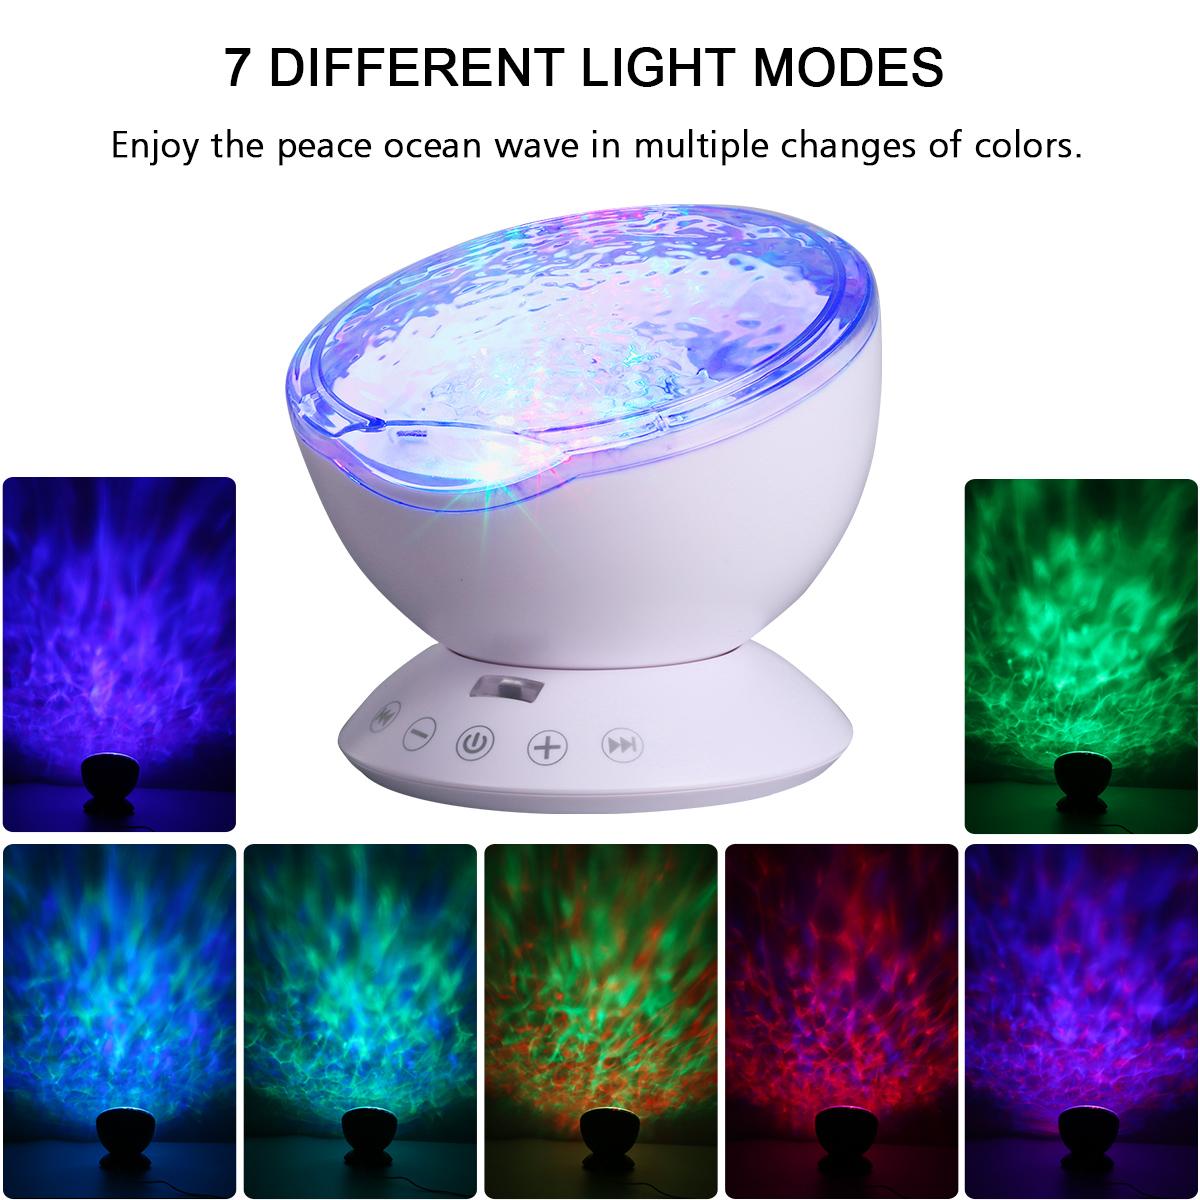 Lampwin Remote Control Ocean Wave Night Light Projector 12 LEDs & 7 Color changing Modes with Built-in Mini Music Player for Living Room and Bedroom (White)